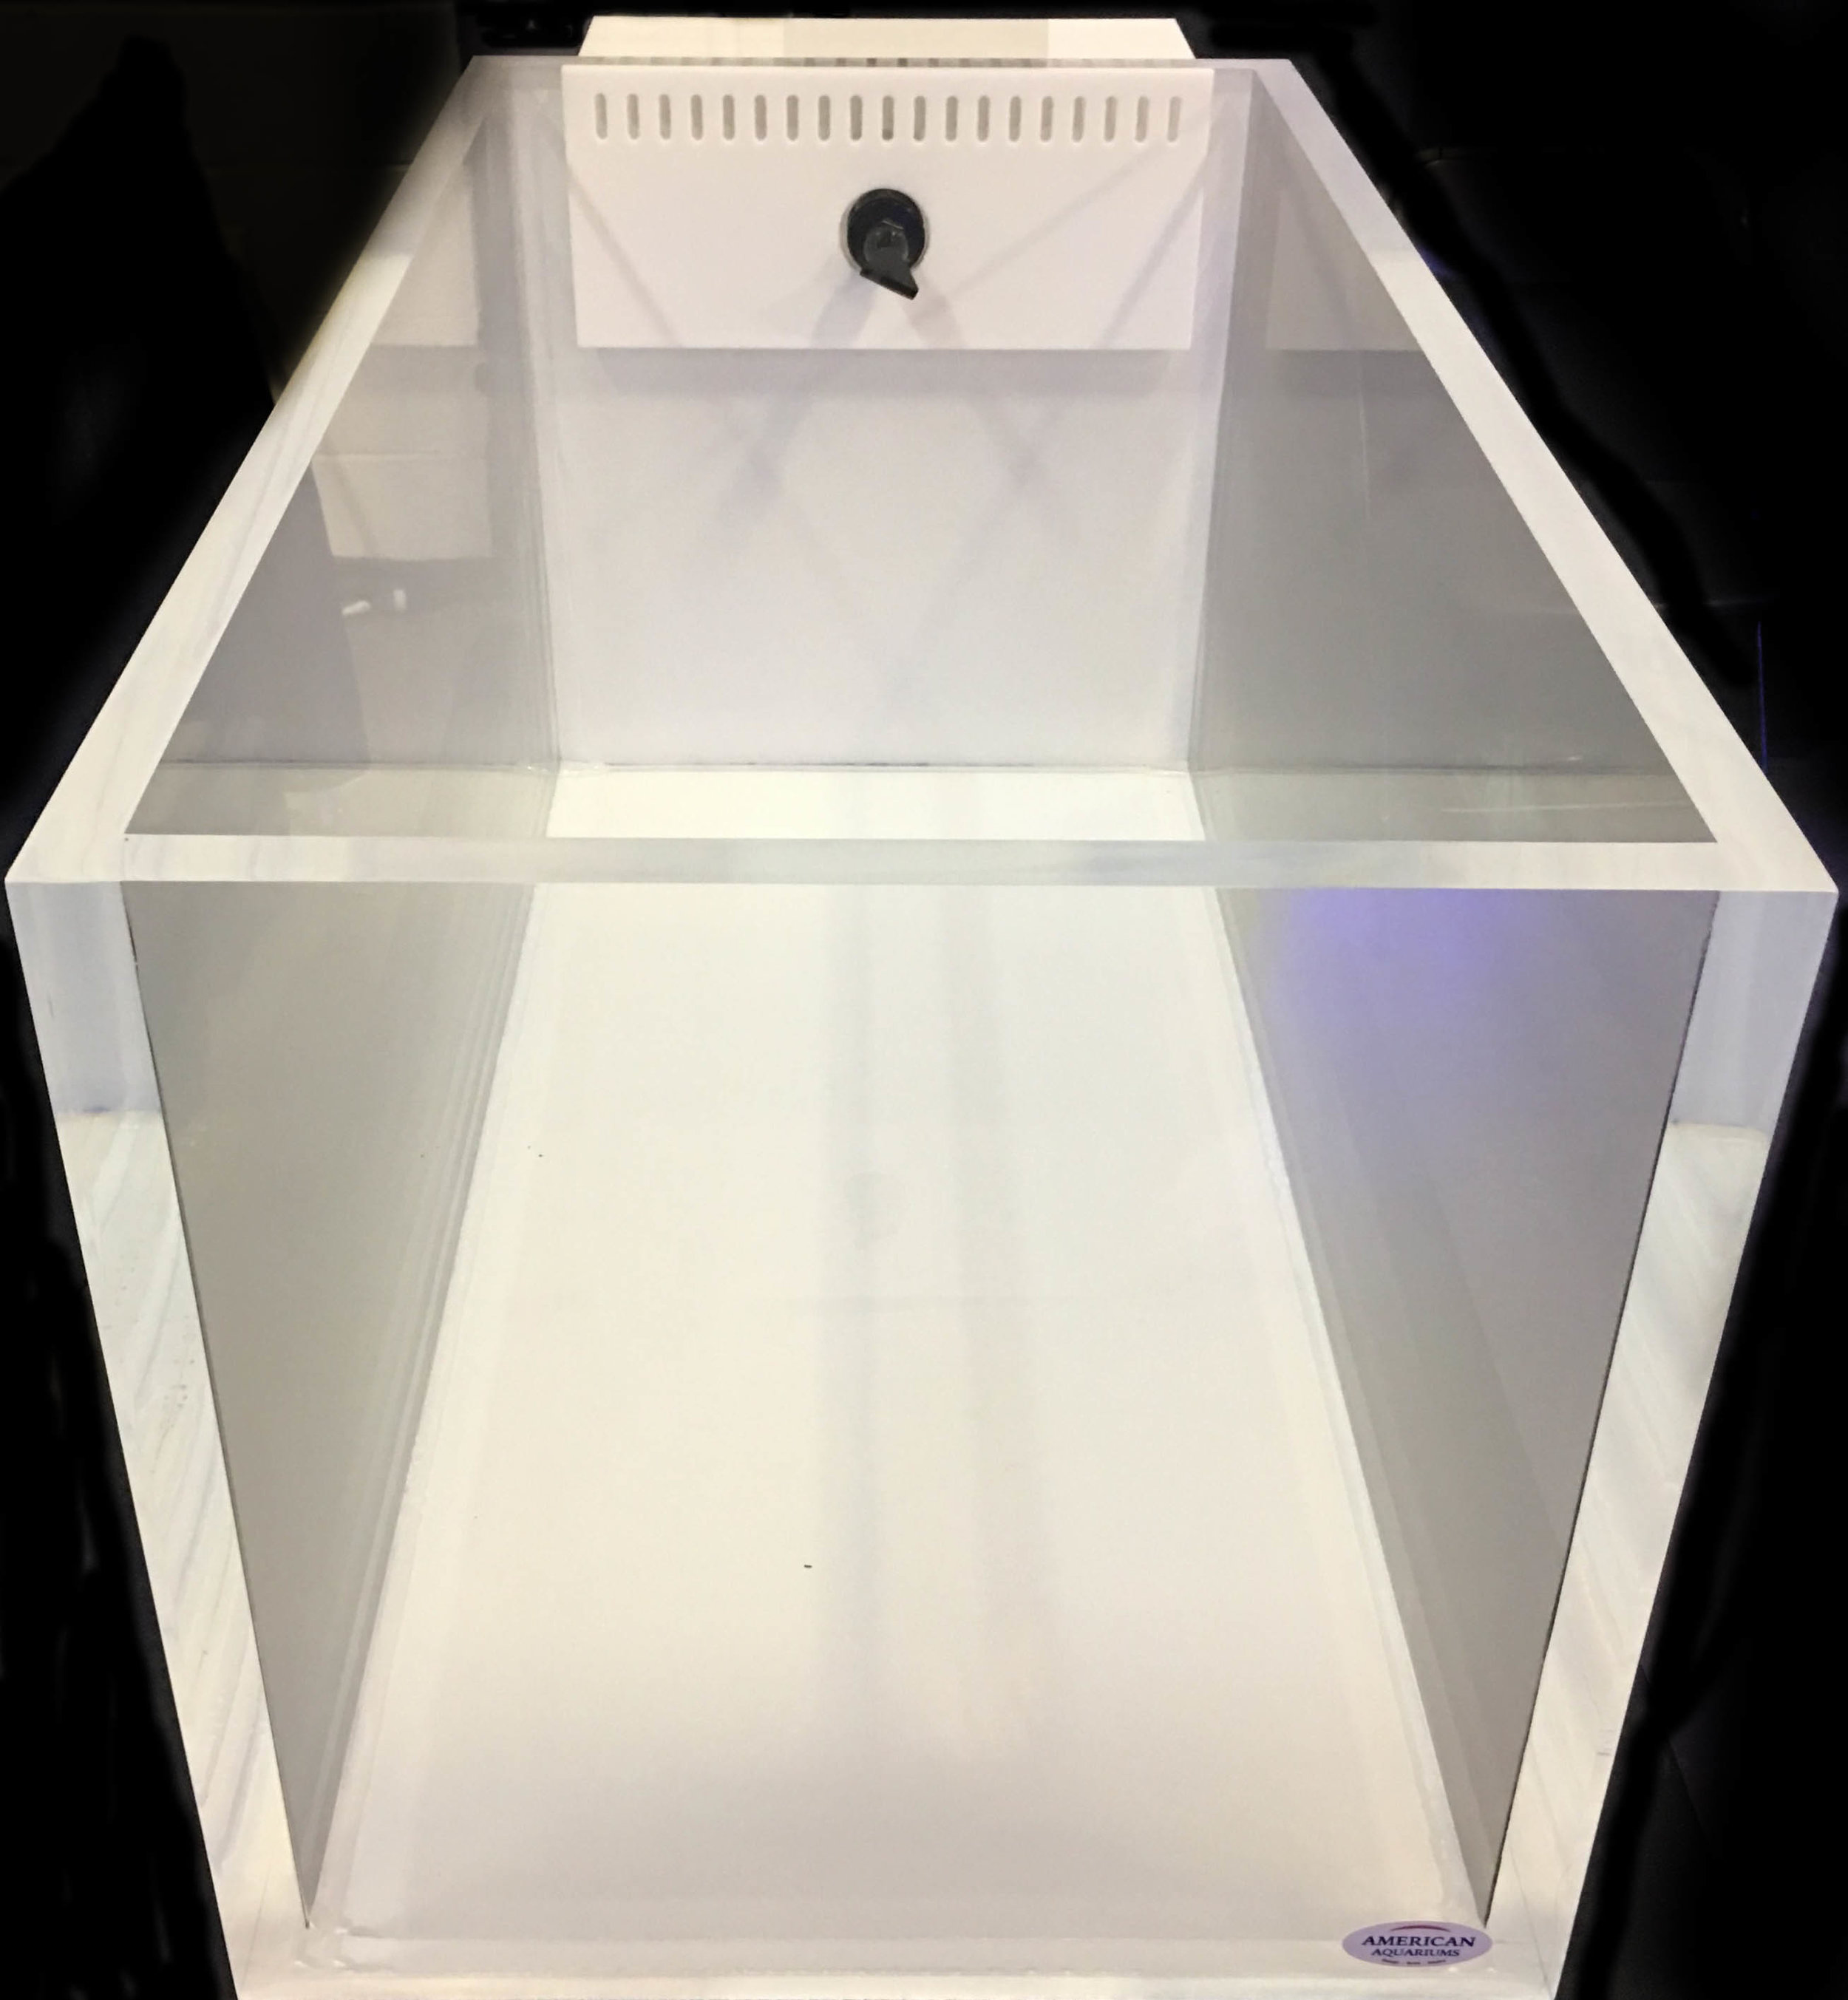 Rimless Style Aquariums - Rimless aquariums are tanks that do not have a top frame. Thicker material must be used for the side panels to prevent deflection (bowing). This increases the aquarium cost but offers an extremely